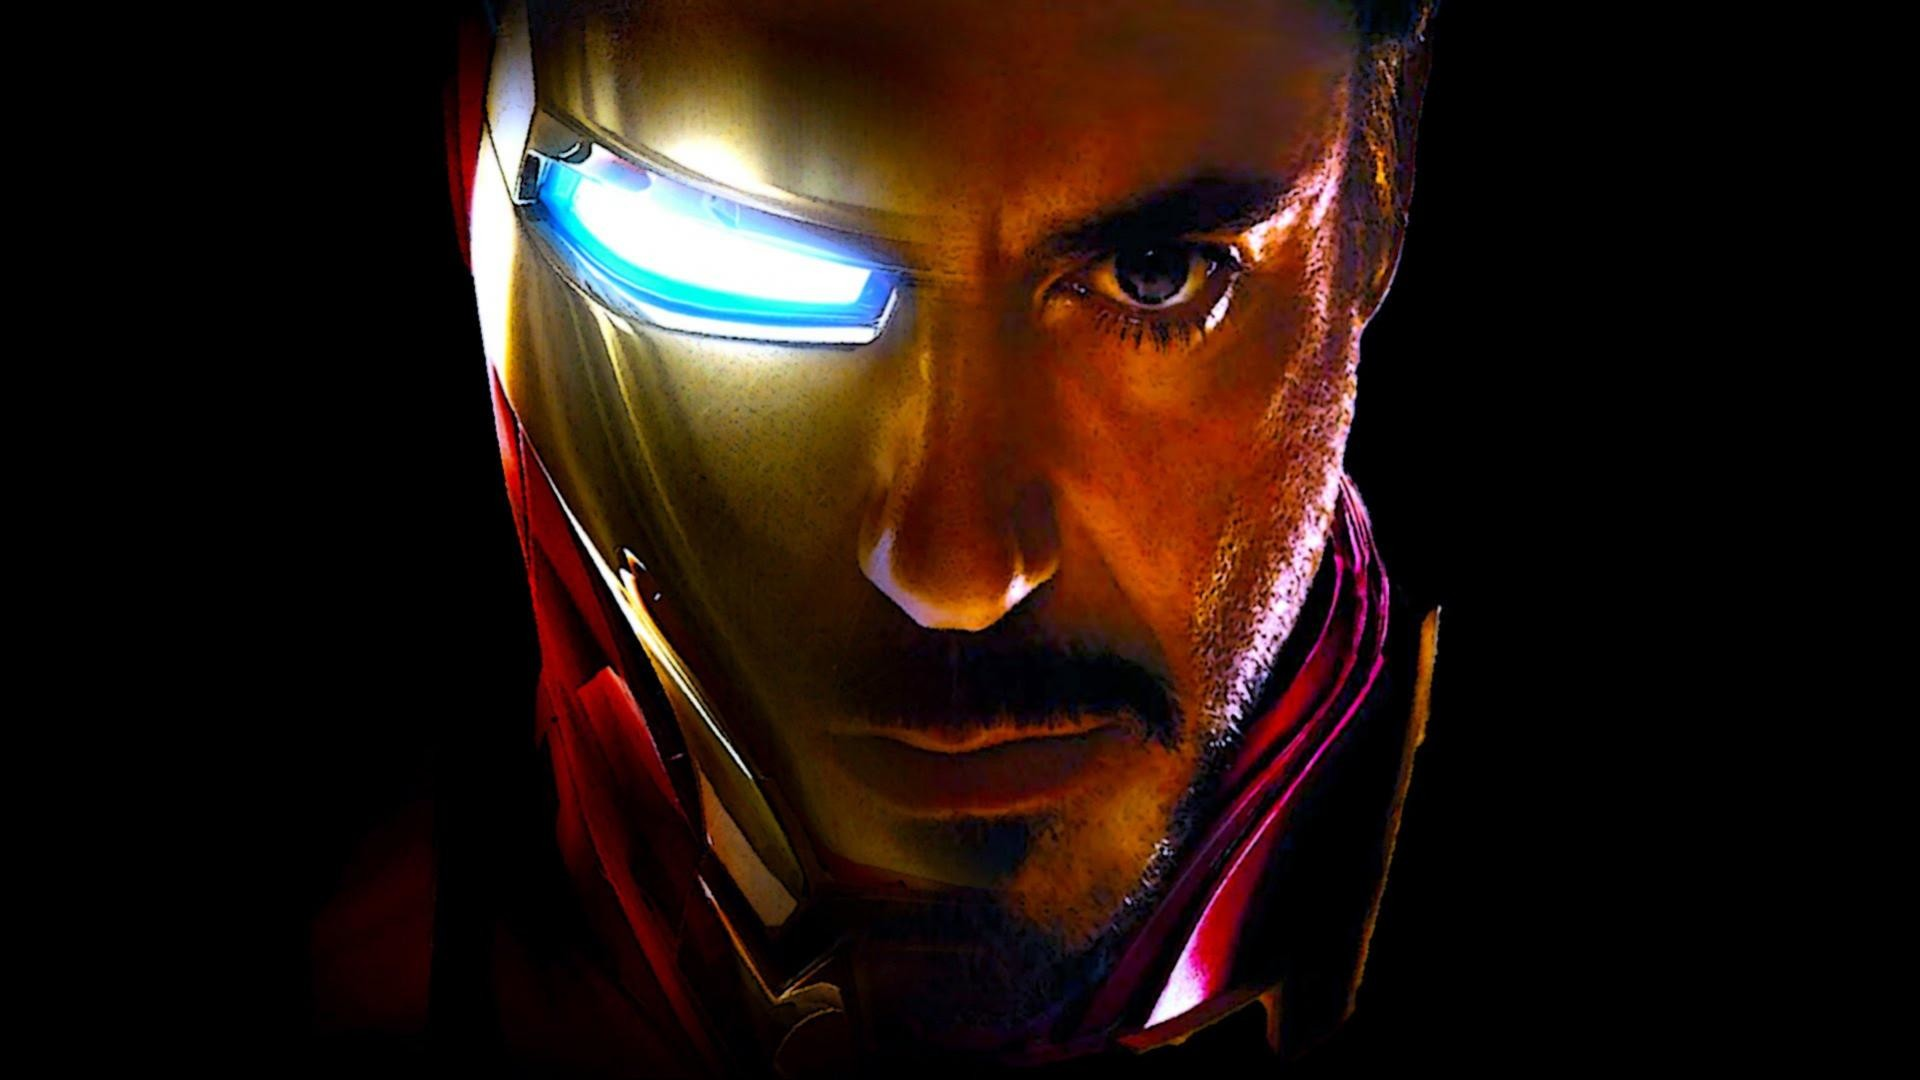 1920x1080 ... Iron Man Wallpaper - Face of Iron Man and Tony Stark (Robert Downey Jr.  ...